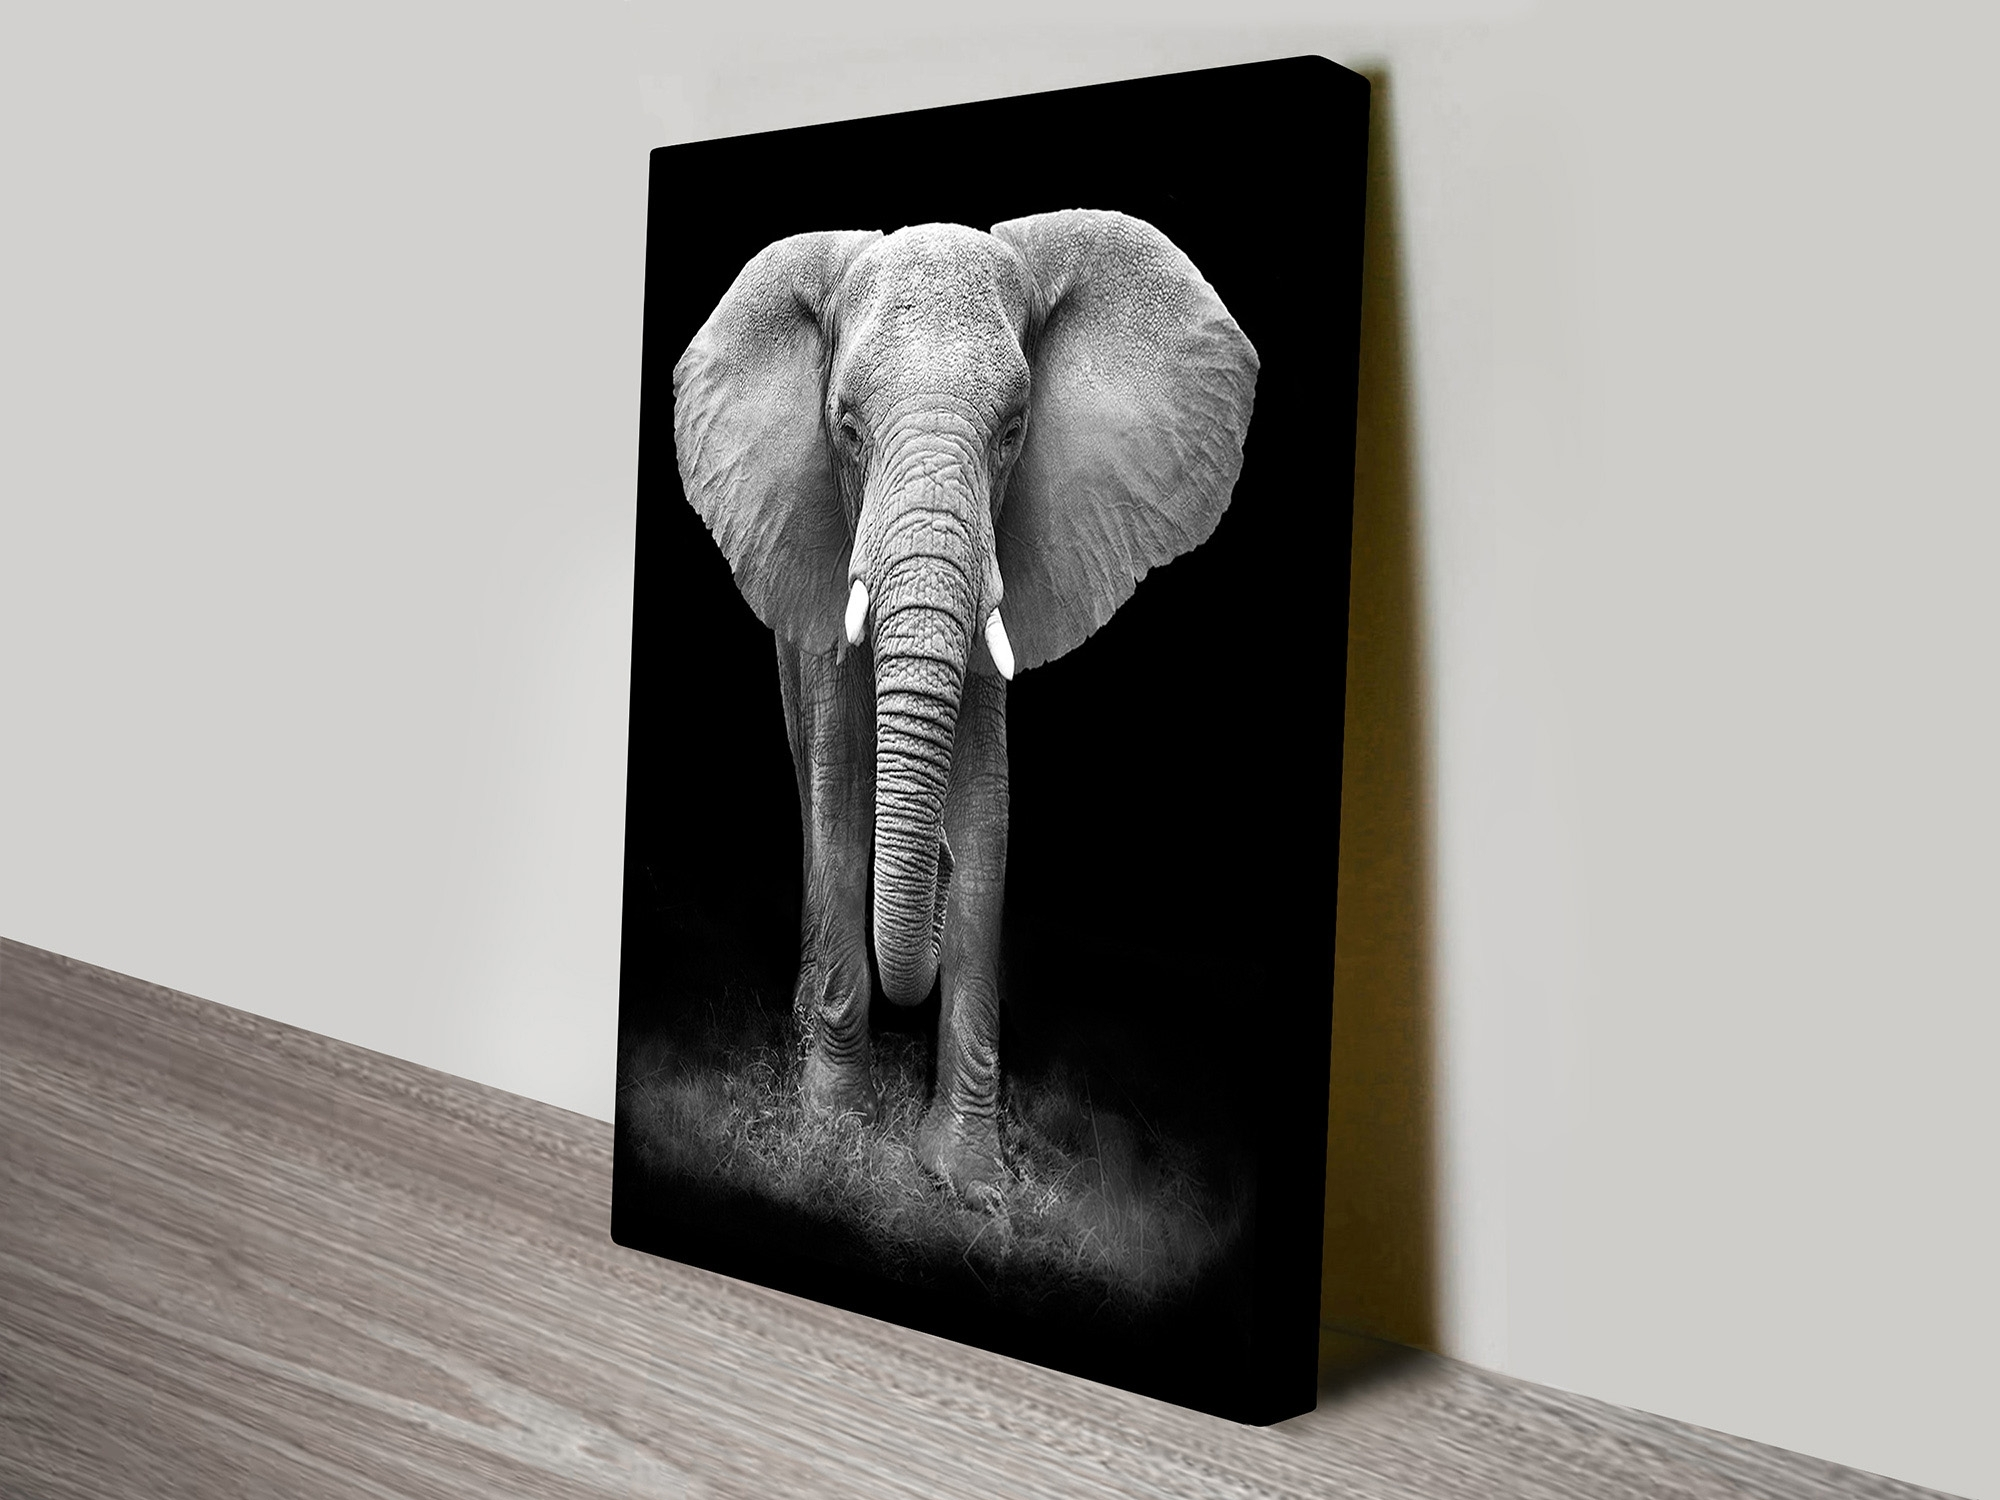 Gentle Giant Elephant Canvas Wall Art – Blue Horizon Prints With Regard To Most Popular Elephant Canvas Wall Art (View 15 of 20)